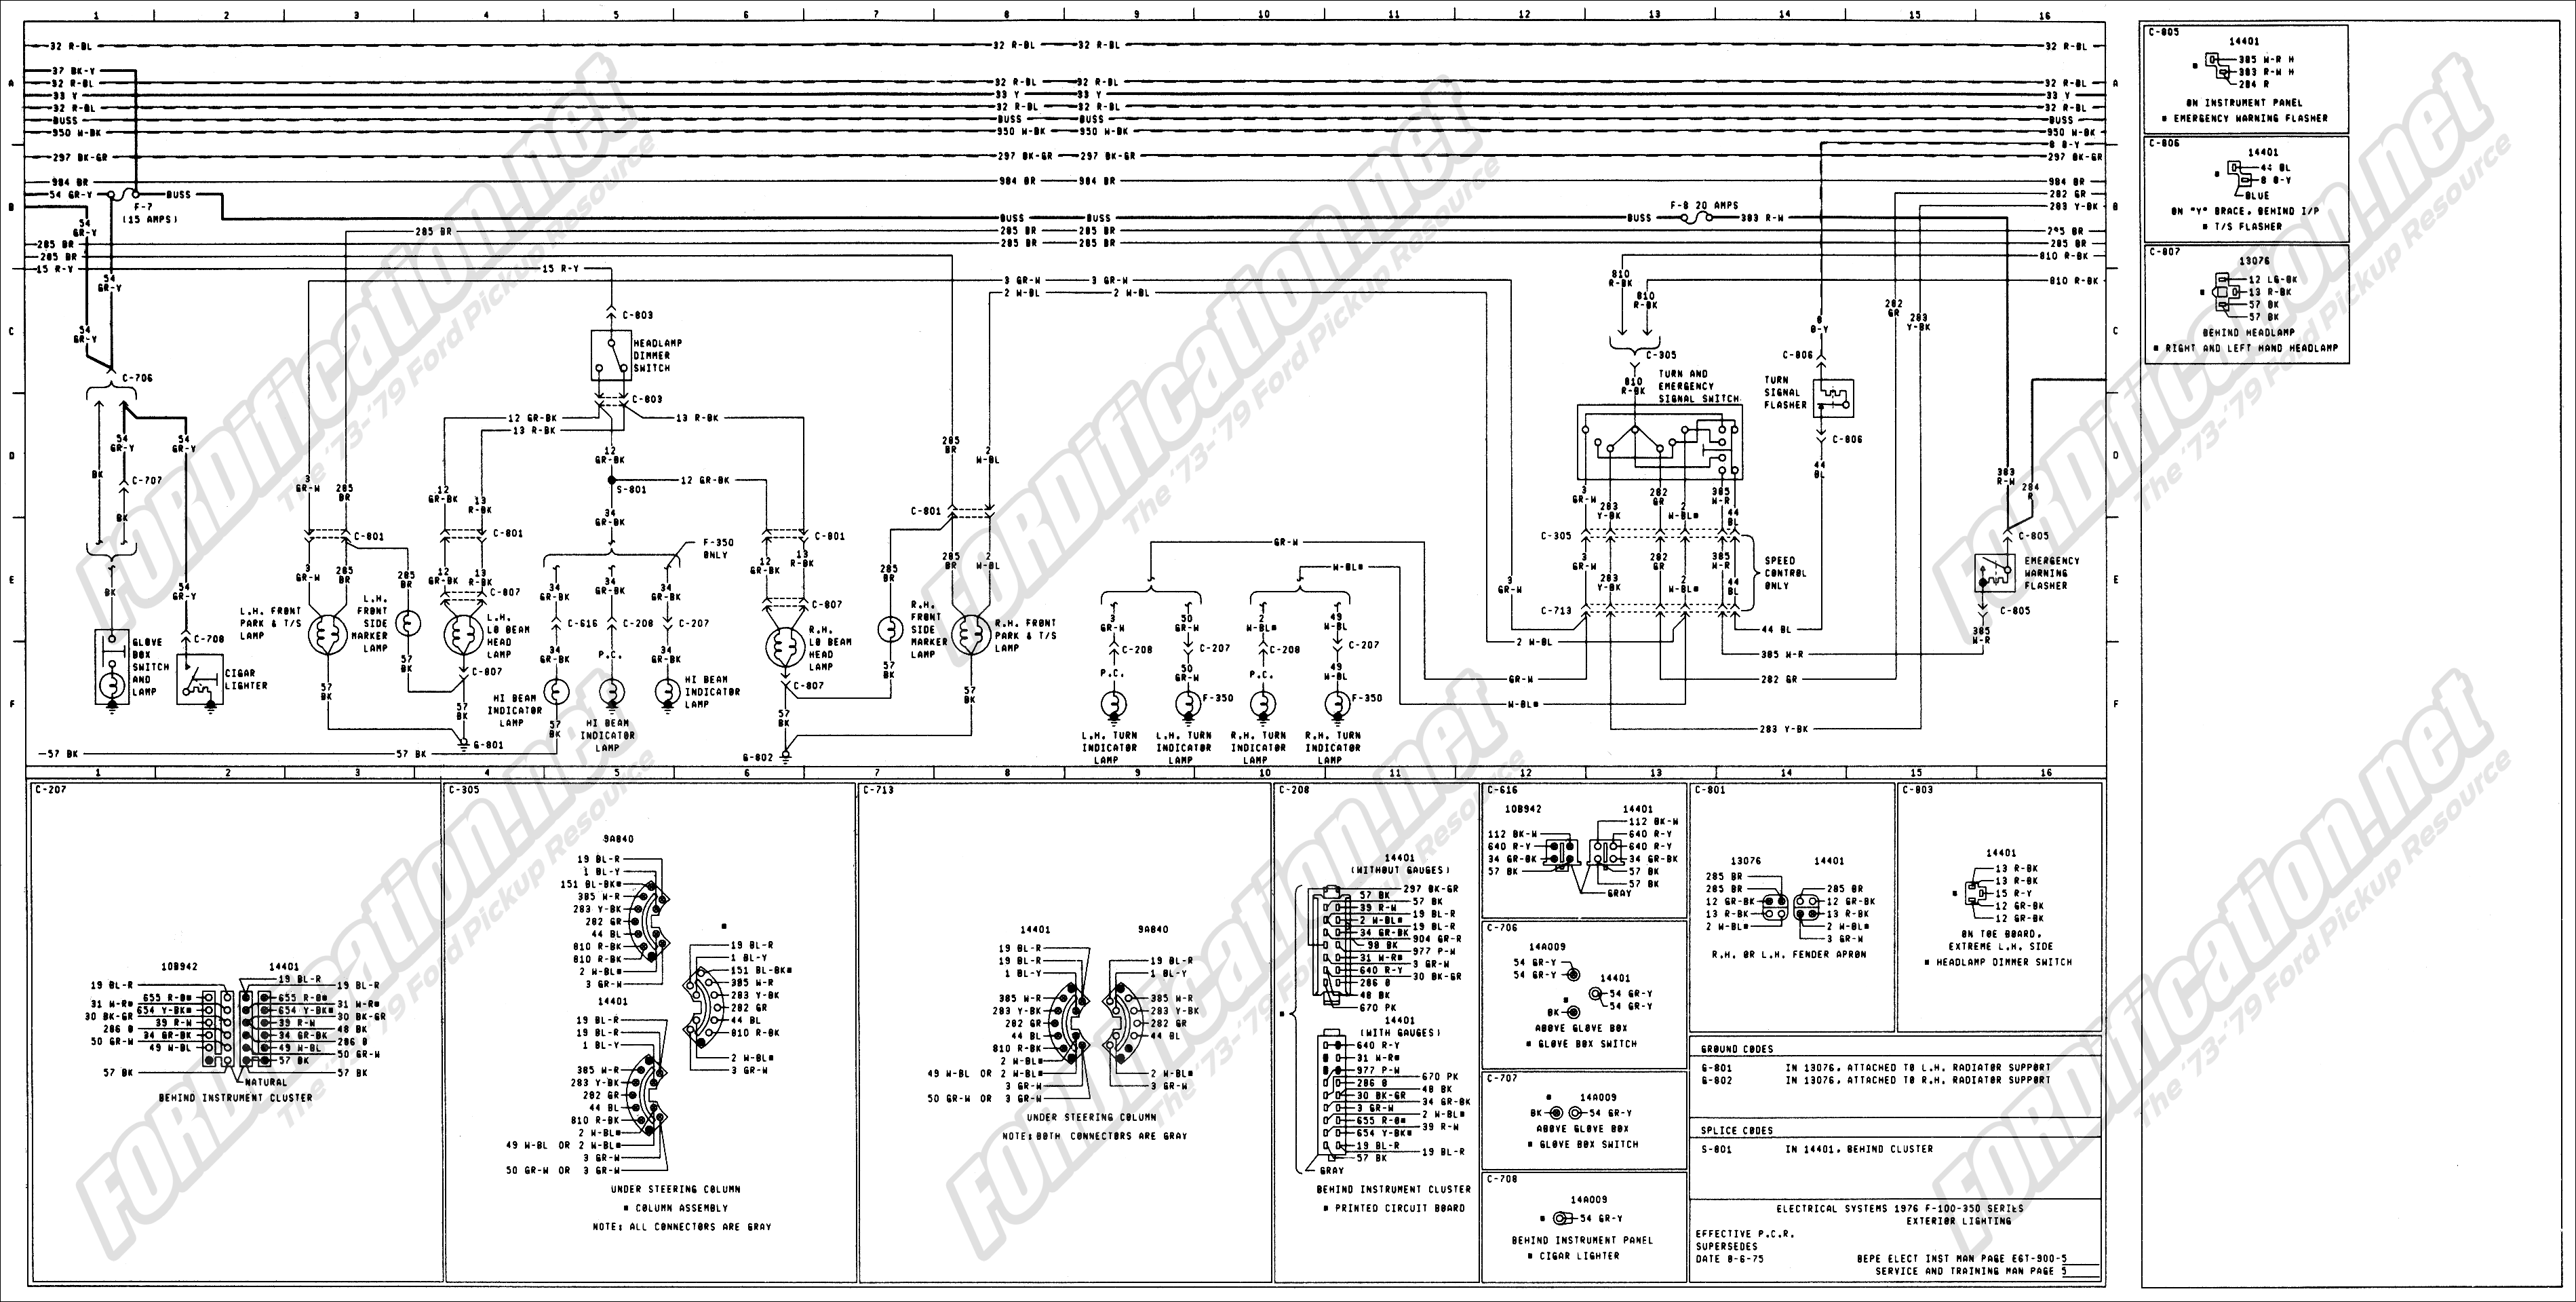 2001 Ford Van Fuse Box Diagram Start Building A Wiring E 150 Econoline Panel Turn Sygnal F Schematic Rh Theodocle Fion Com E150